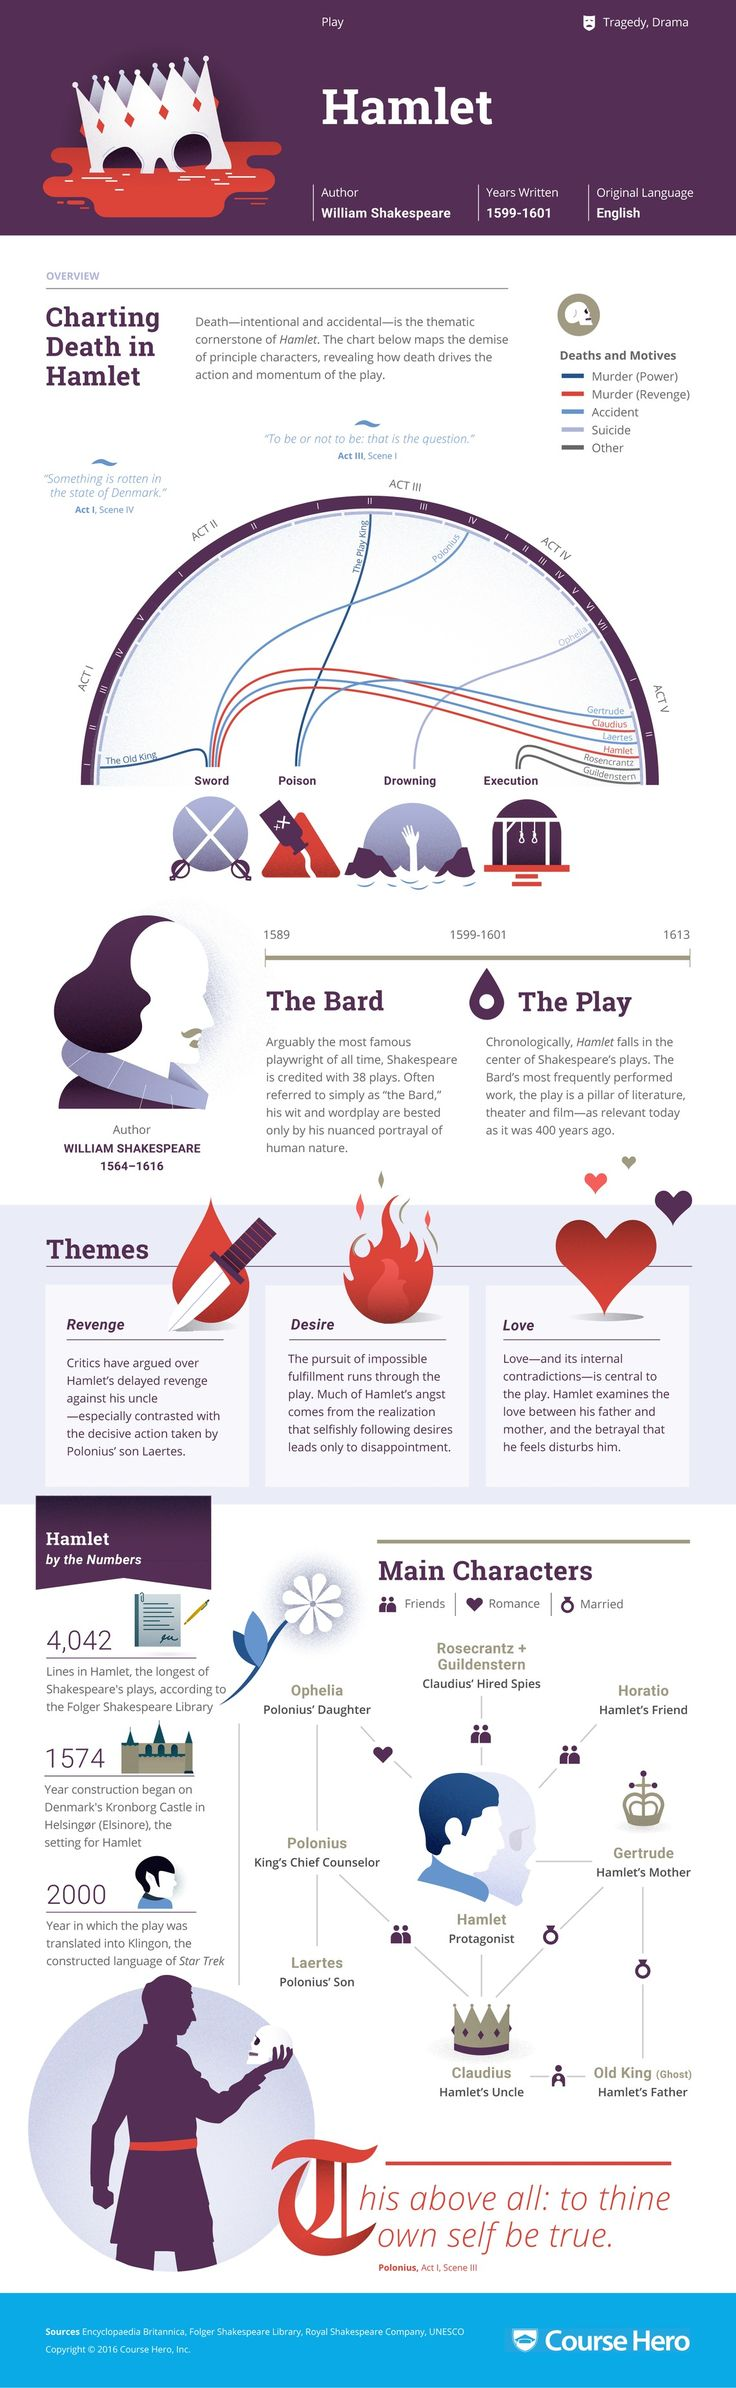 best ideas about shakespearean tragedy check out this awesome hamlet infographic from course hero